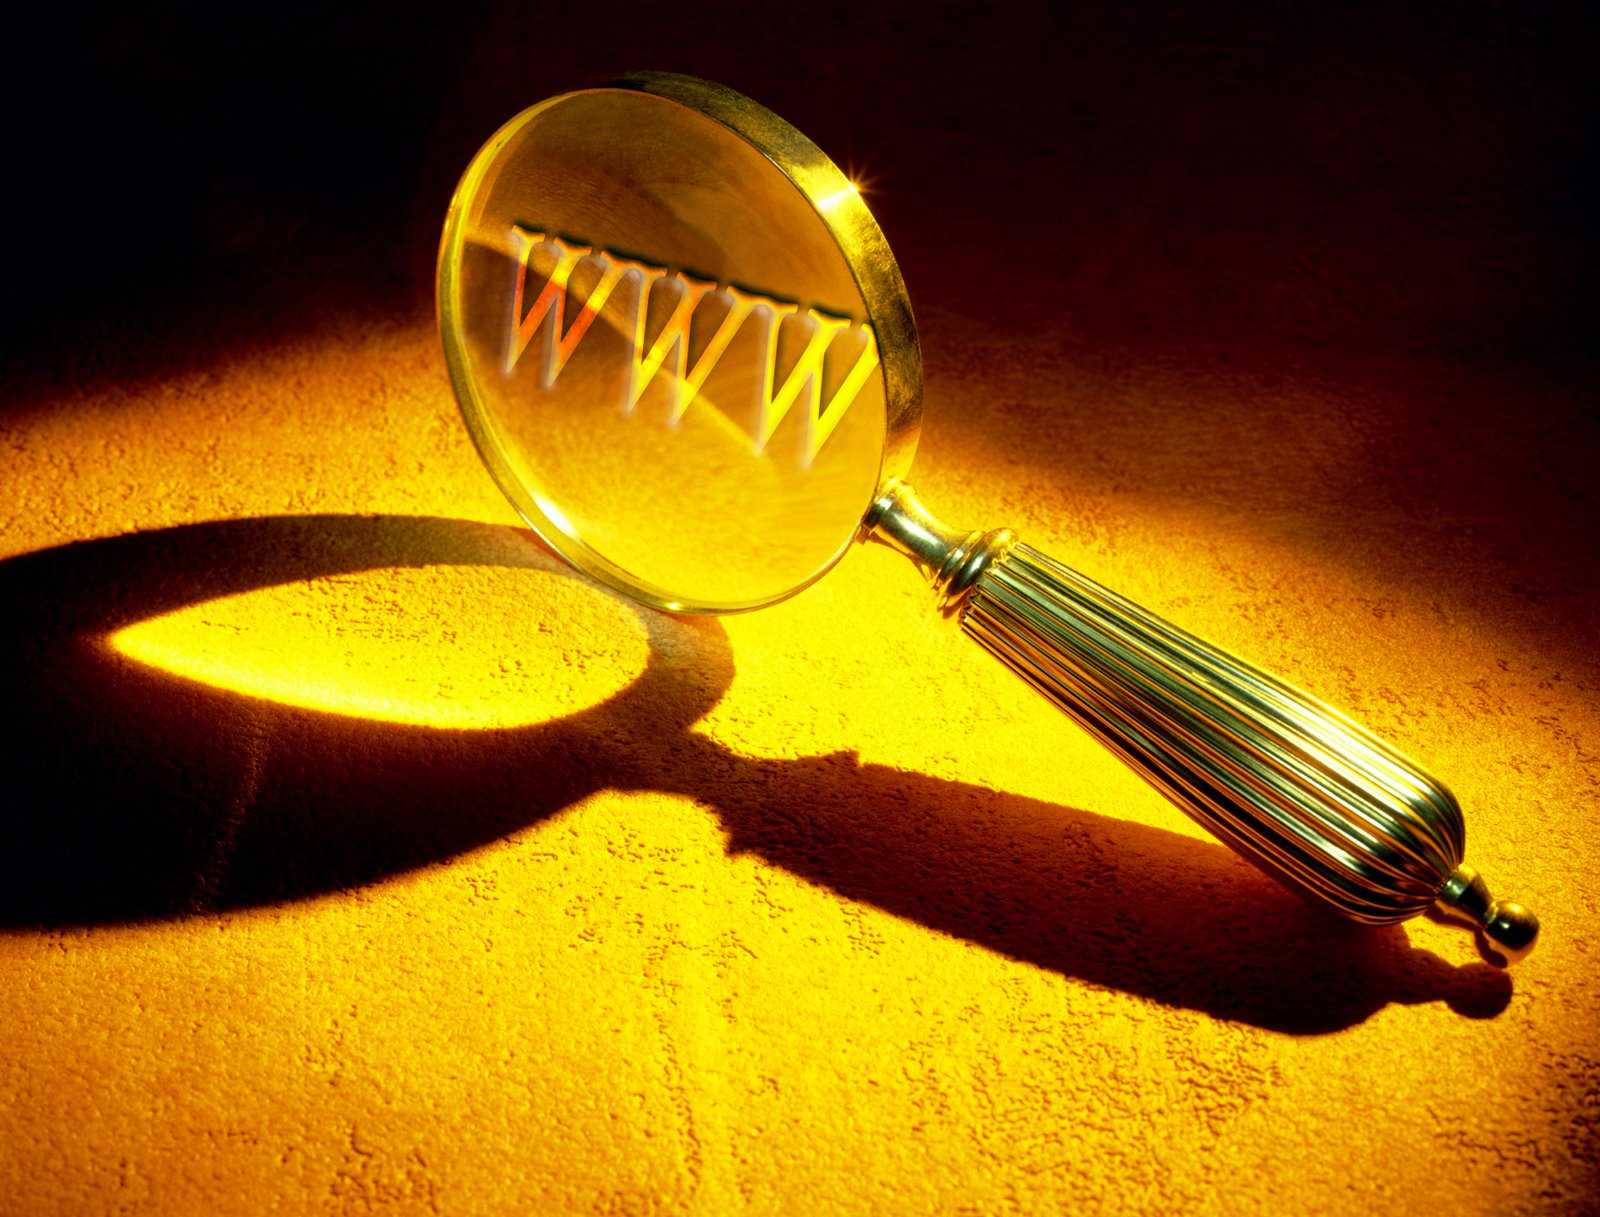 WWW-Magnifying-glass